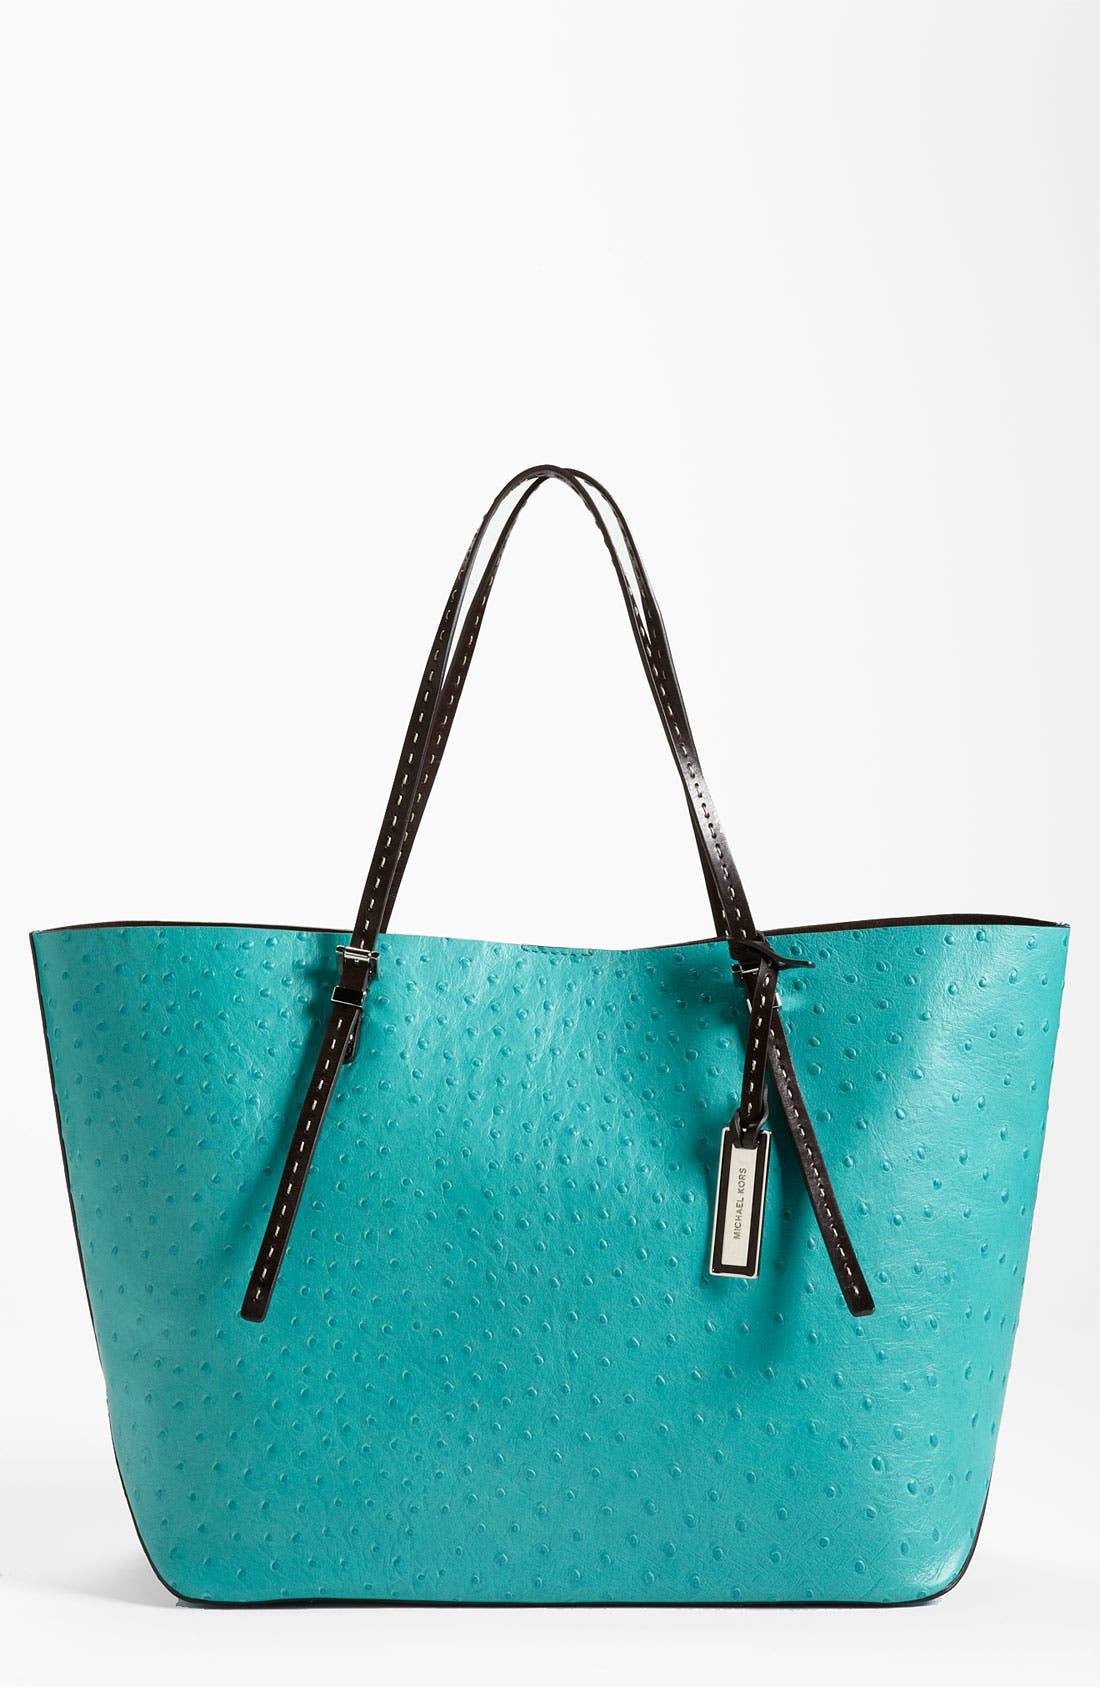 Main Image - Michael Kors Ostrich Embossed Leather Tote